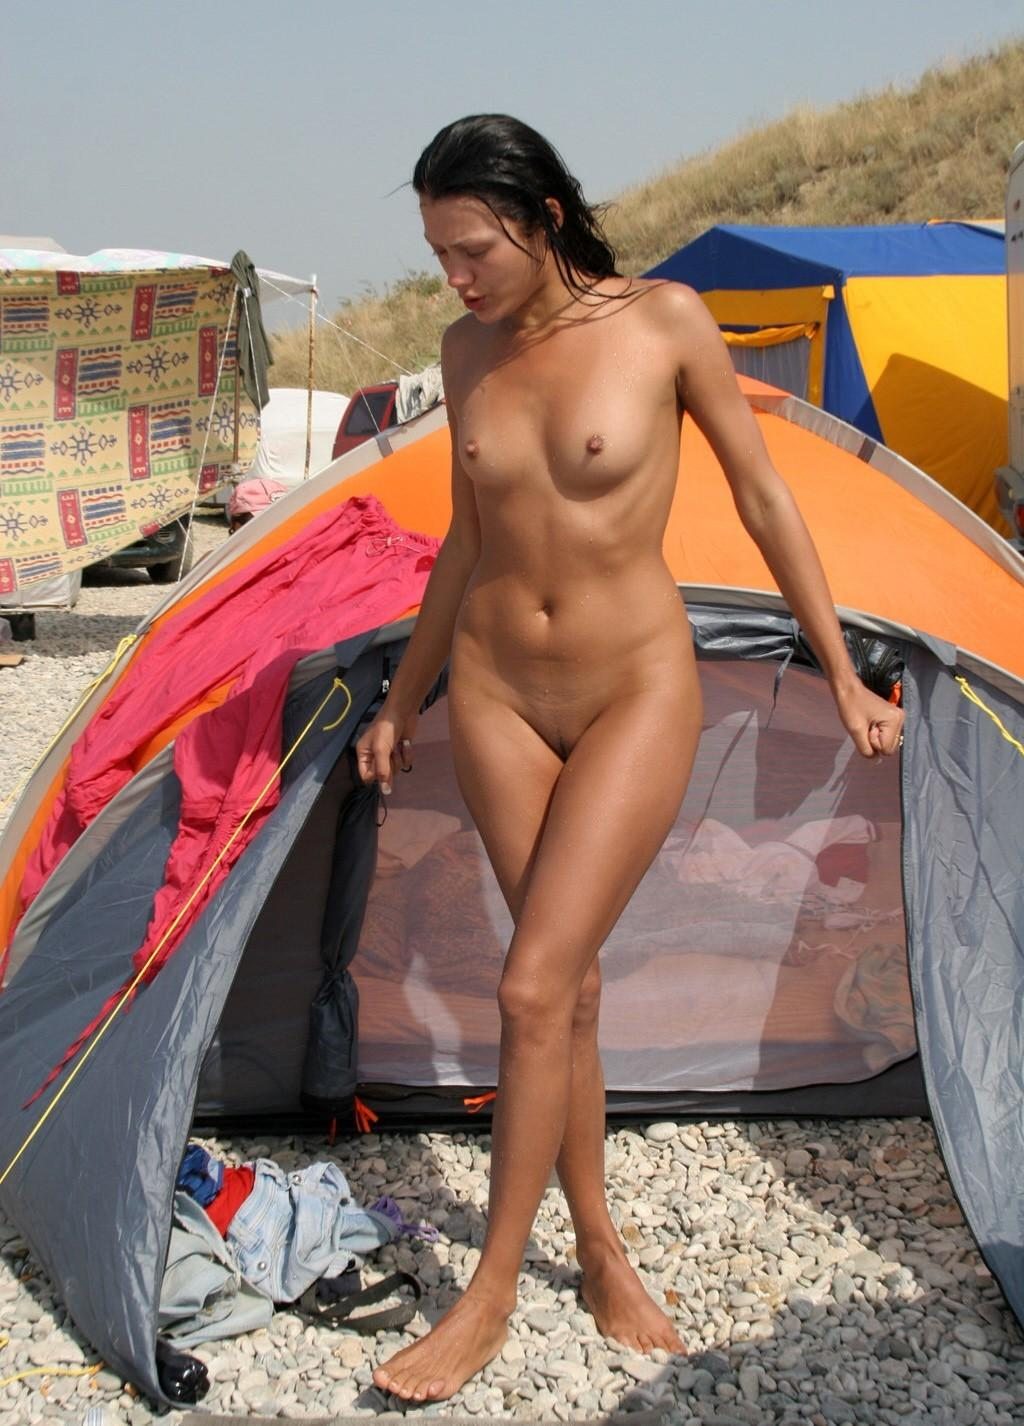 Hot girls camping nude photos